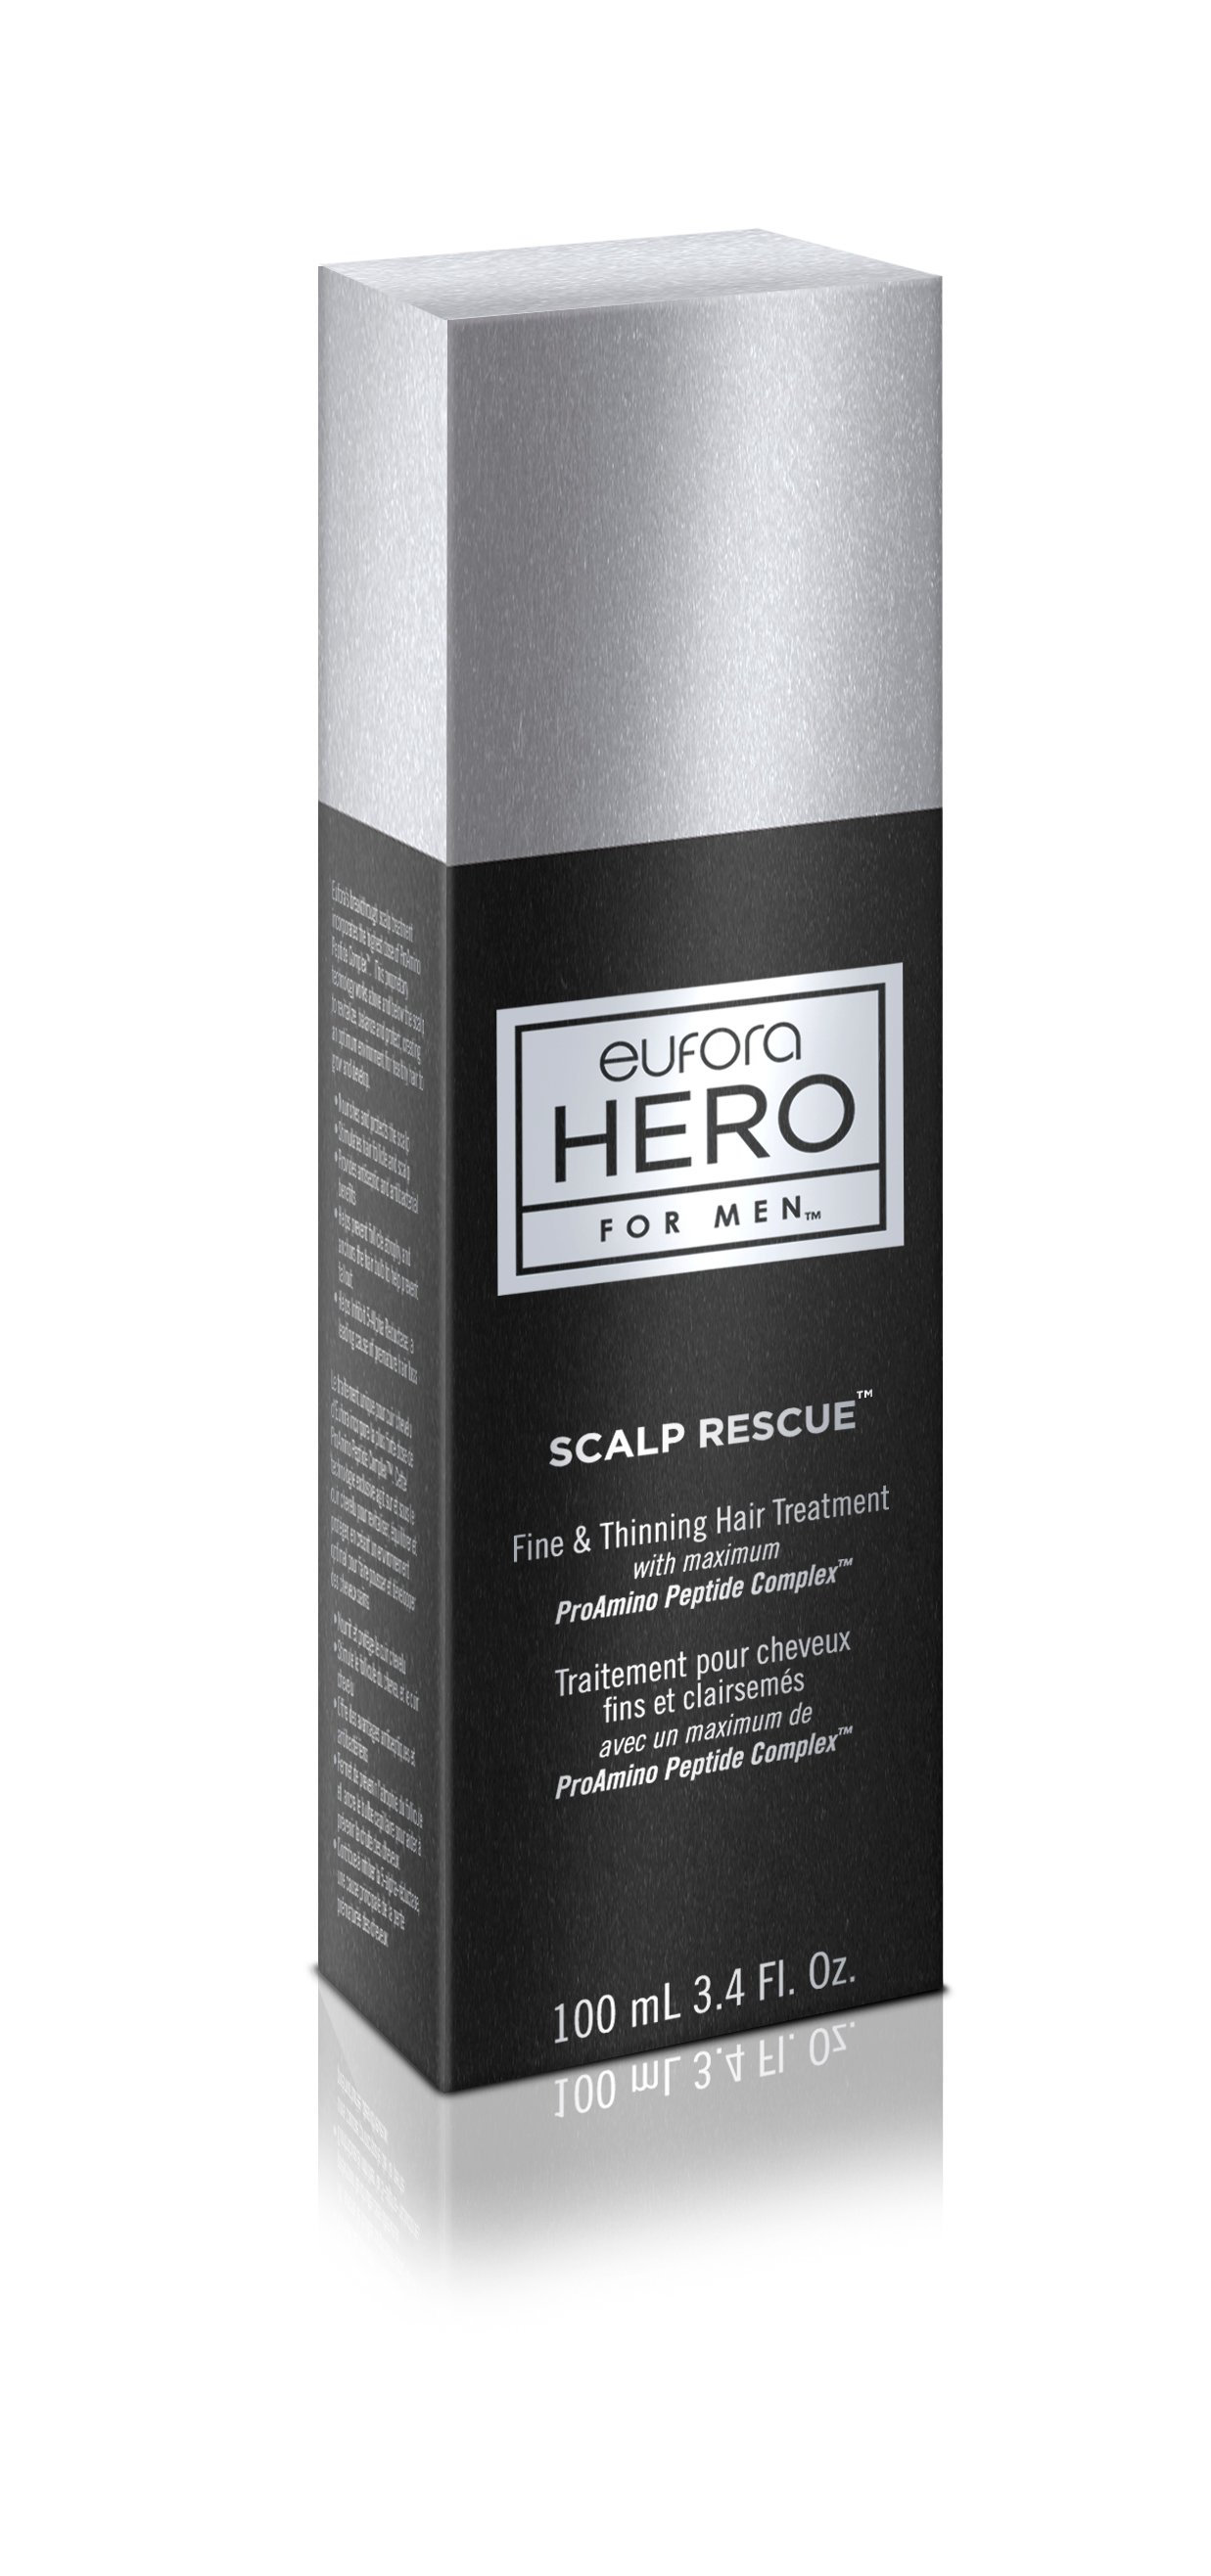 FATHER'S DAY: Eufora HERO for Men Scalp Rescue